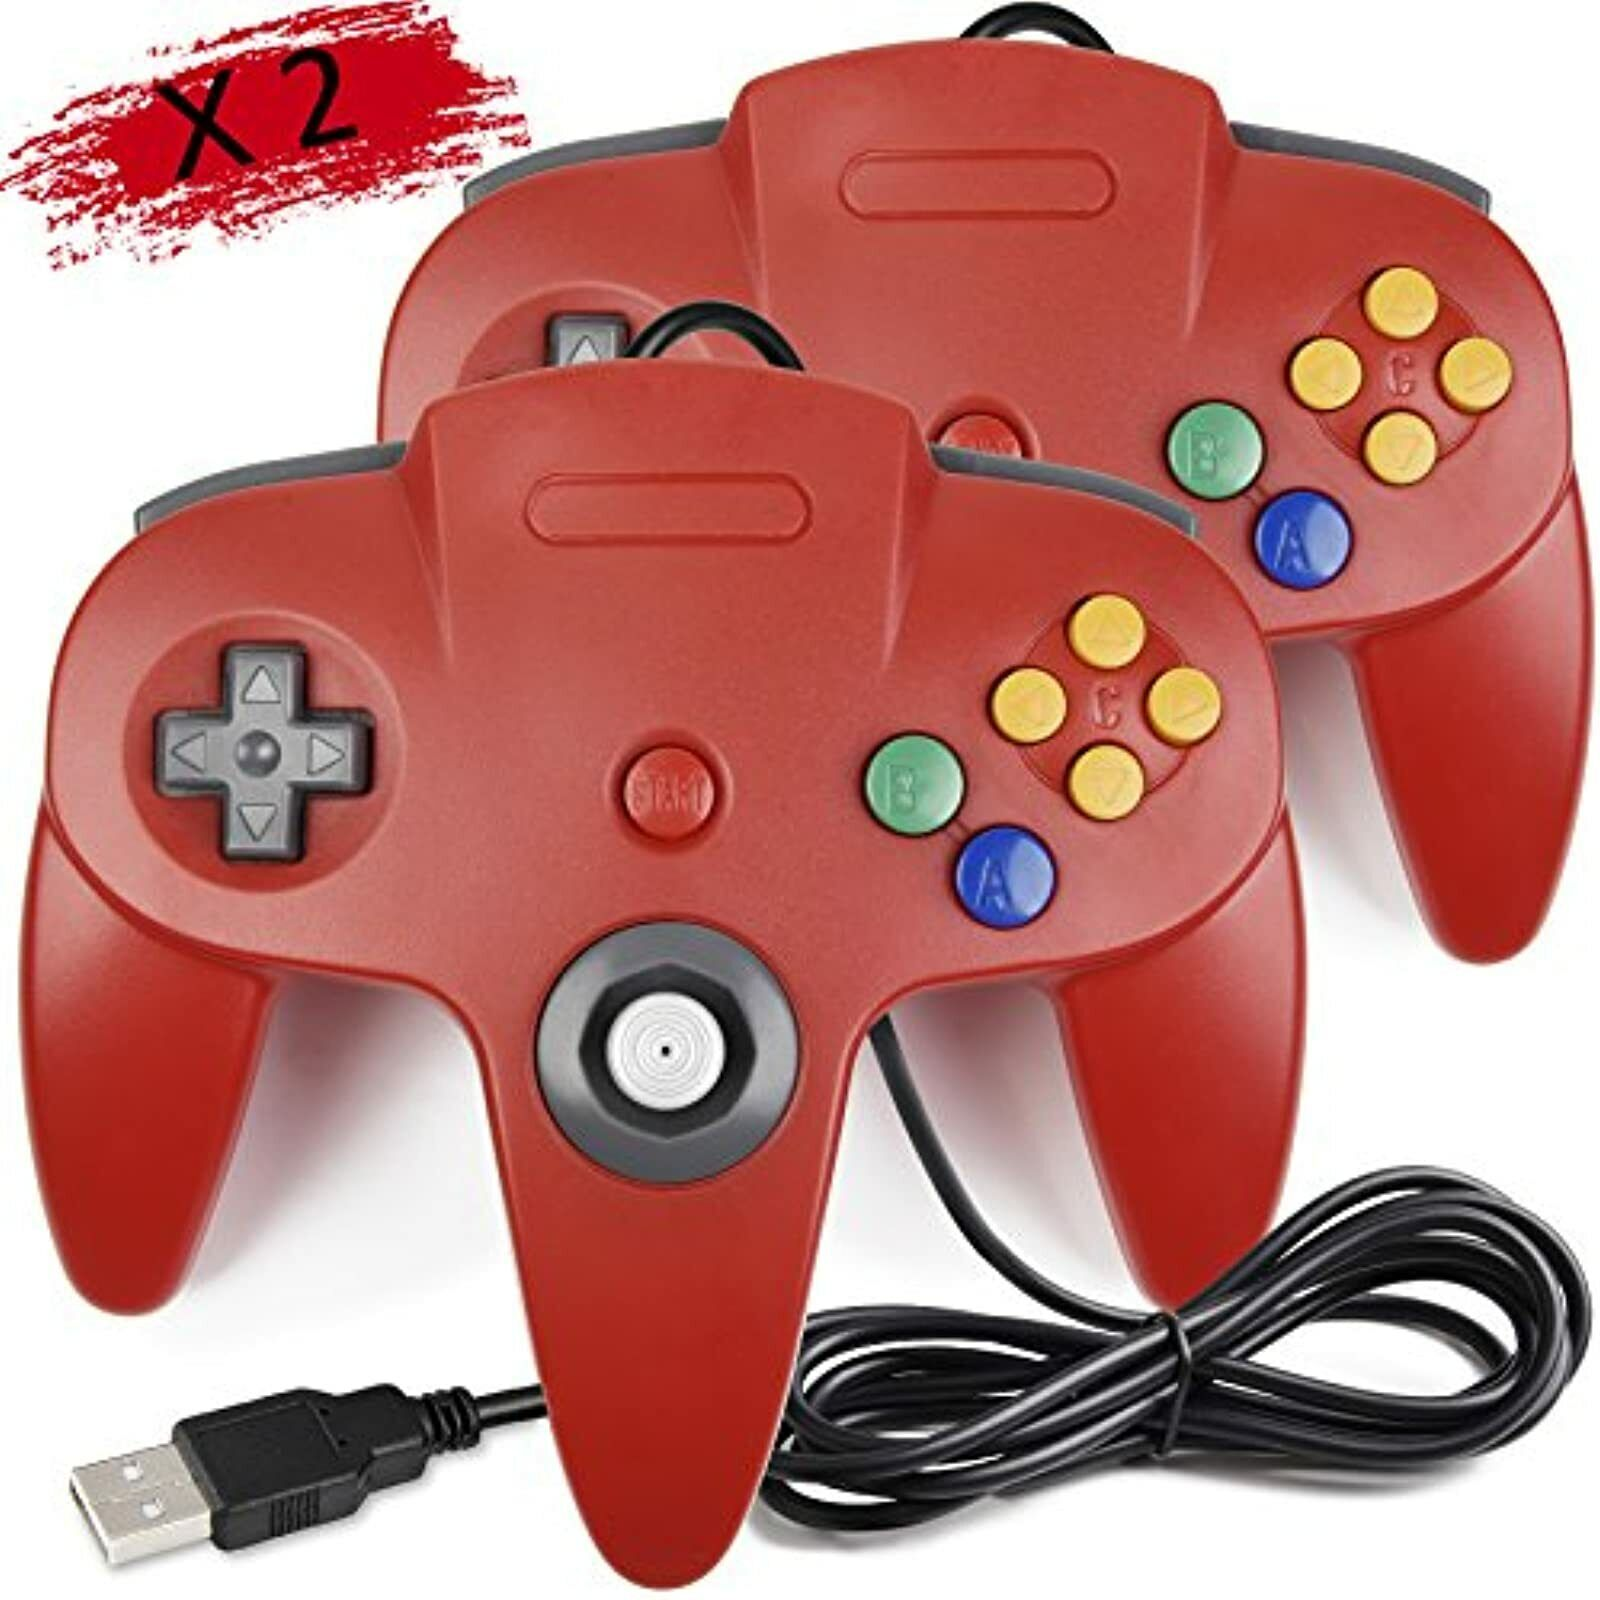 2 Pack Classic Retro N64 Bit USB Wired Controller For Windows PC MAC Linux